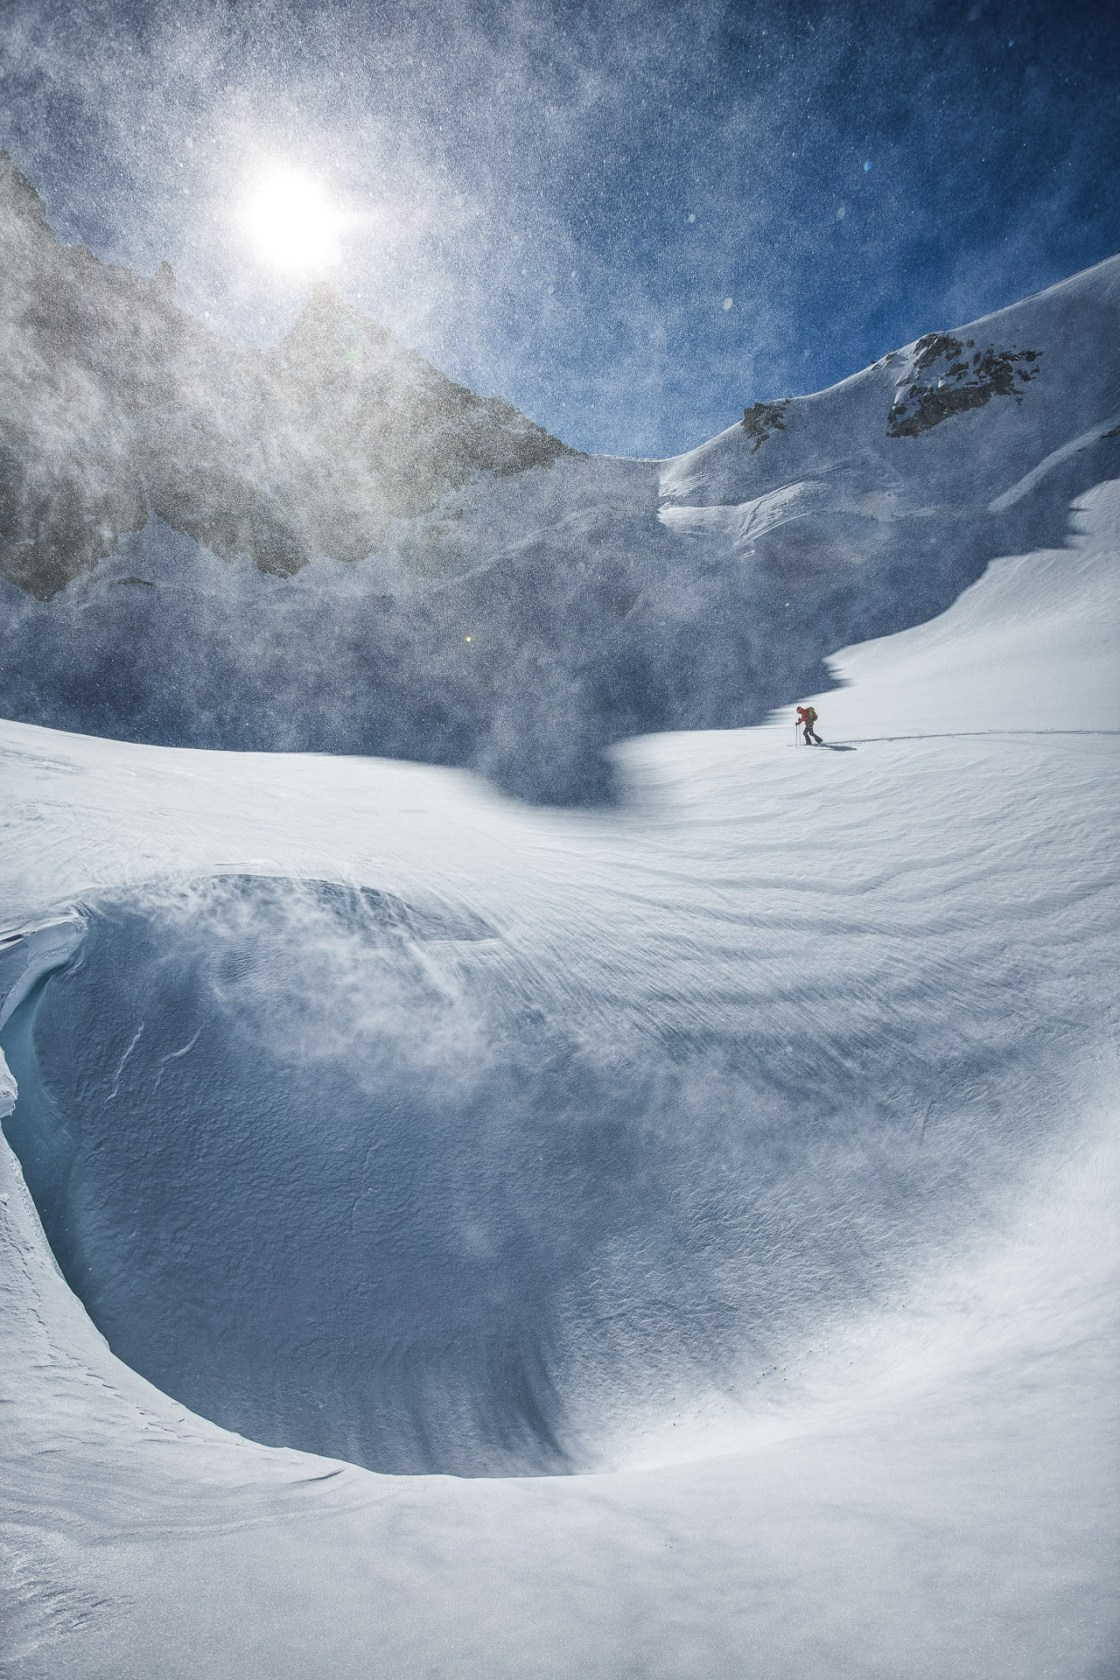 Liz Daley skins Glacier des Améthystes, Chamonix, France.  It was a bitter cold day with negative double-digits Fahrenheit temps. Liz is in diesel truck-mode, breaking trail with head down, hood up, and about to commit to a few hours in the shade. Powder that had been fresh the day before was scoured by wind overnight and so we worked to find sheltered riding while staying off of fresh, sensitive wind slabs. Eventually we made our way down the Switzerland side of the mountain, cooked by candlelight at a climbers hut, then toured out to Les Montets the following afternoon.